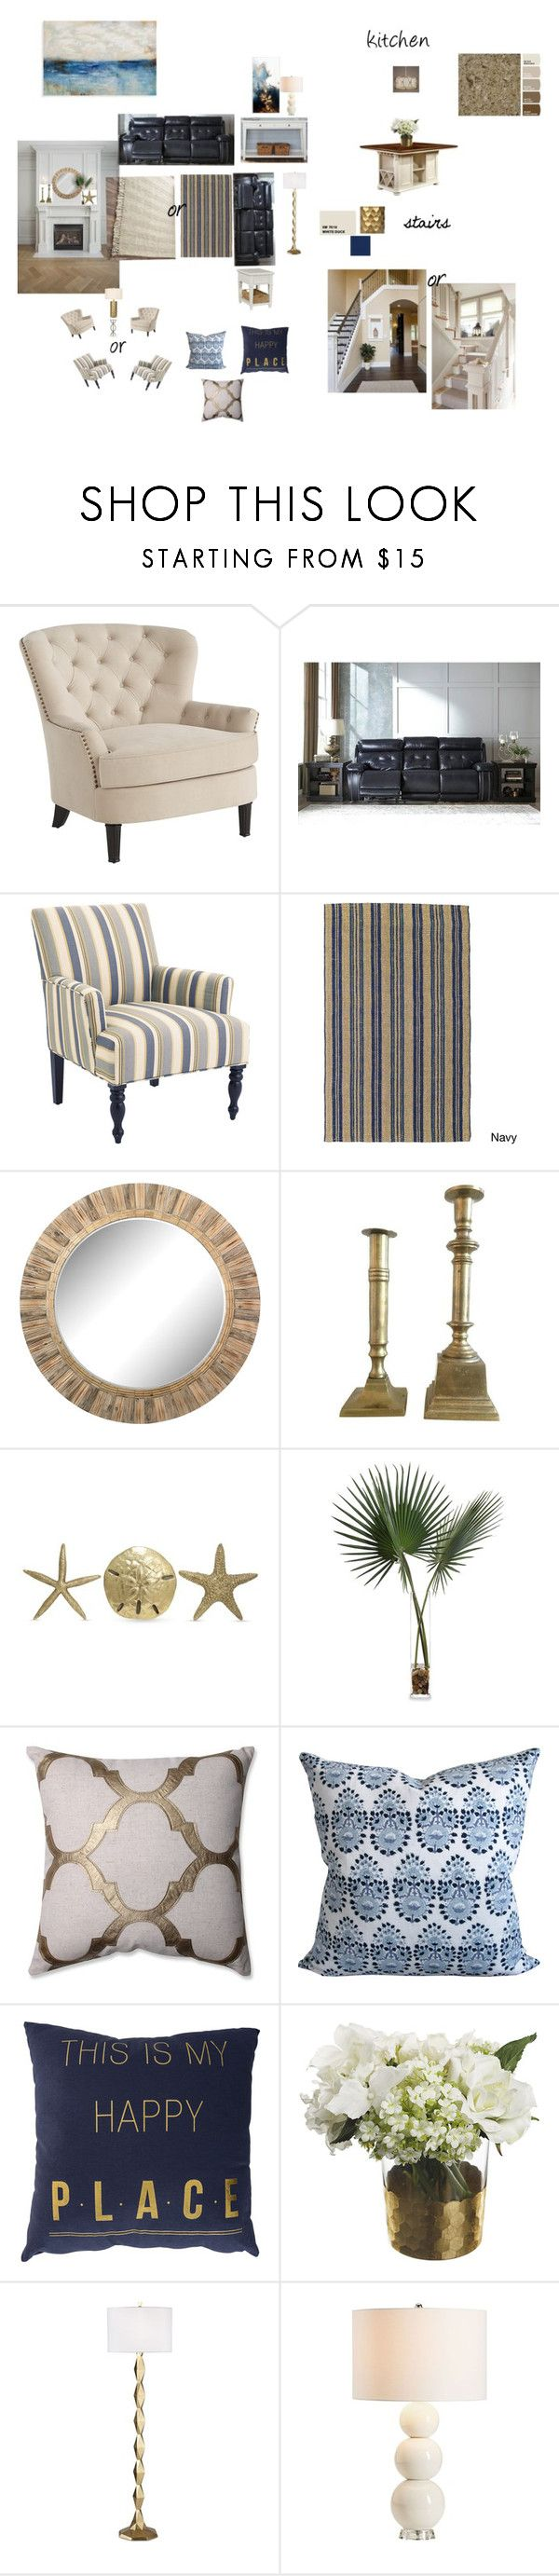 """Navy family room"" by marcia28 on Polyvore featuring interior, interiors, interior design, home, home decor, interior decorating, Pier 1 Imports, Signature Design by Ashley, Kosas Collections and Fetco"